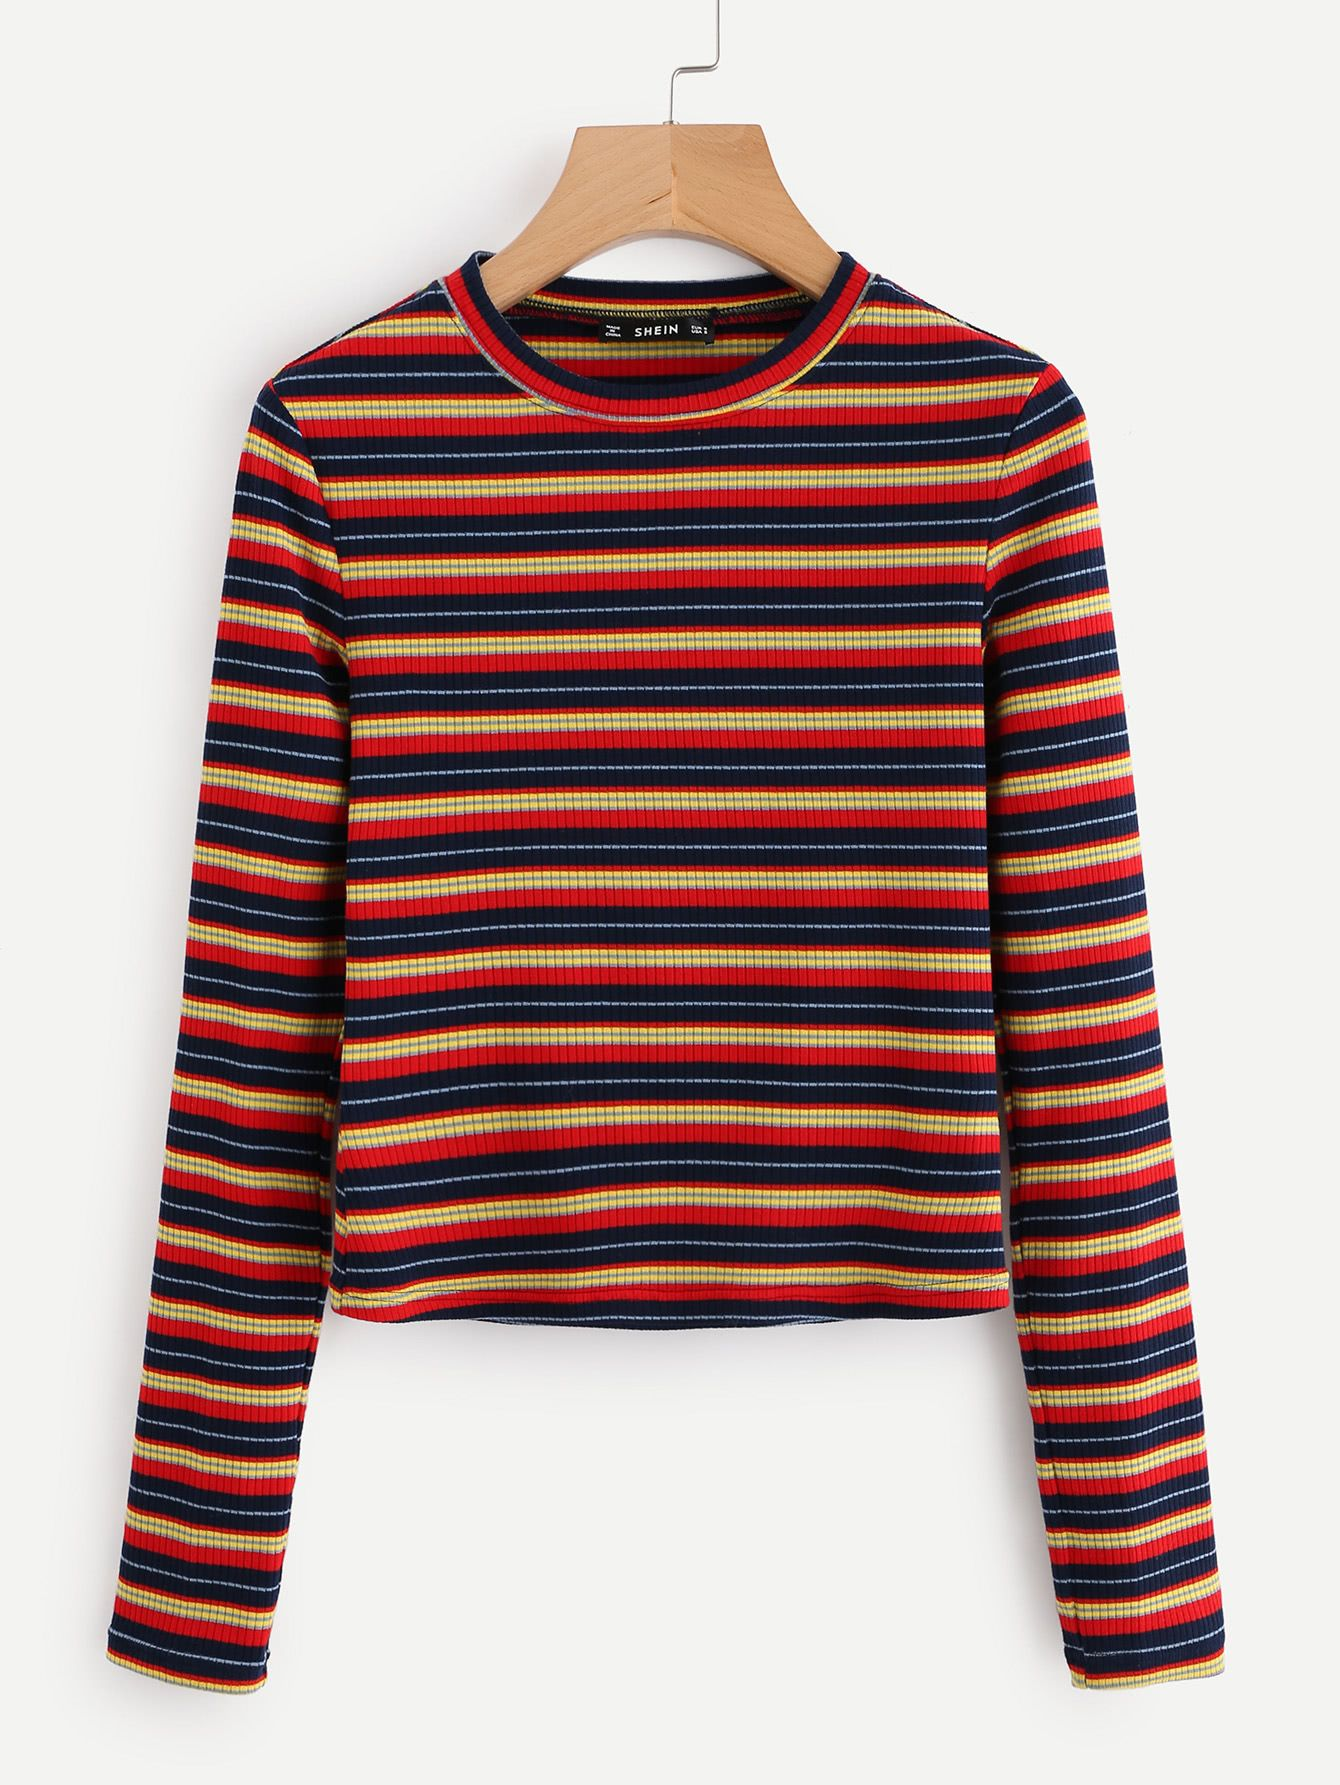 b3ac4a3351 Shop Colorful Striped Ribbed Tee online. SheIn offers Colorful Striped  Ribbed Tee & more to fit your fashionable needs.